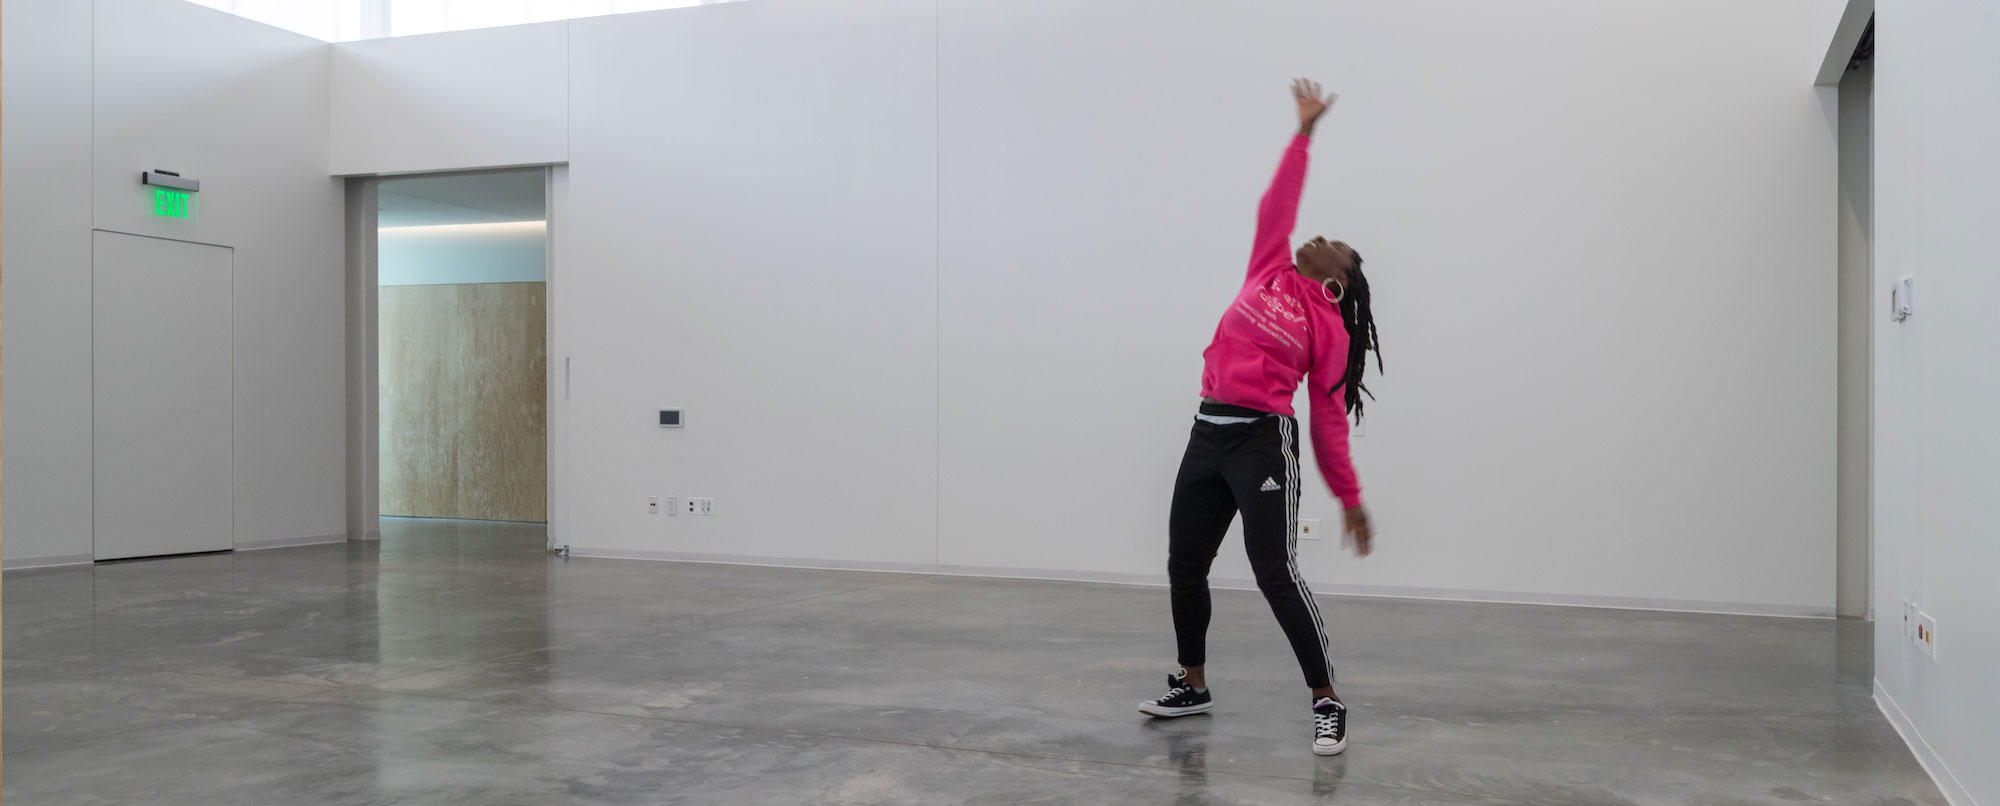 Dancer in the ArtLab space.